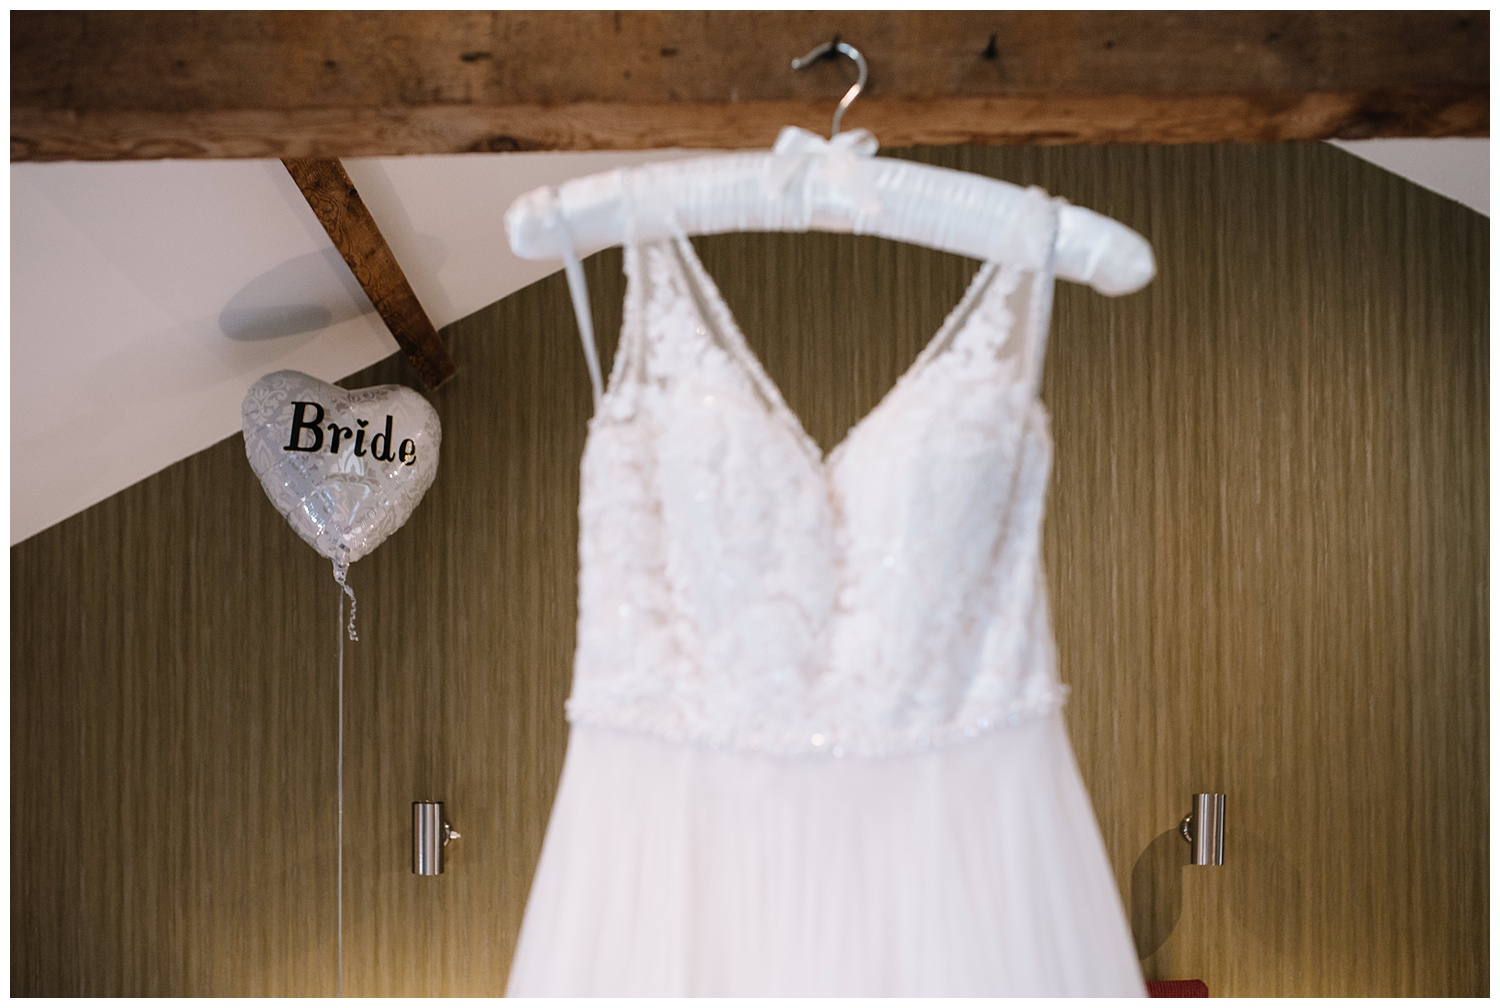 Brides wedding dress hanging on beam with bride balloon in background during bridal prep at the Granary Fawsley